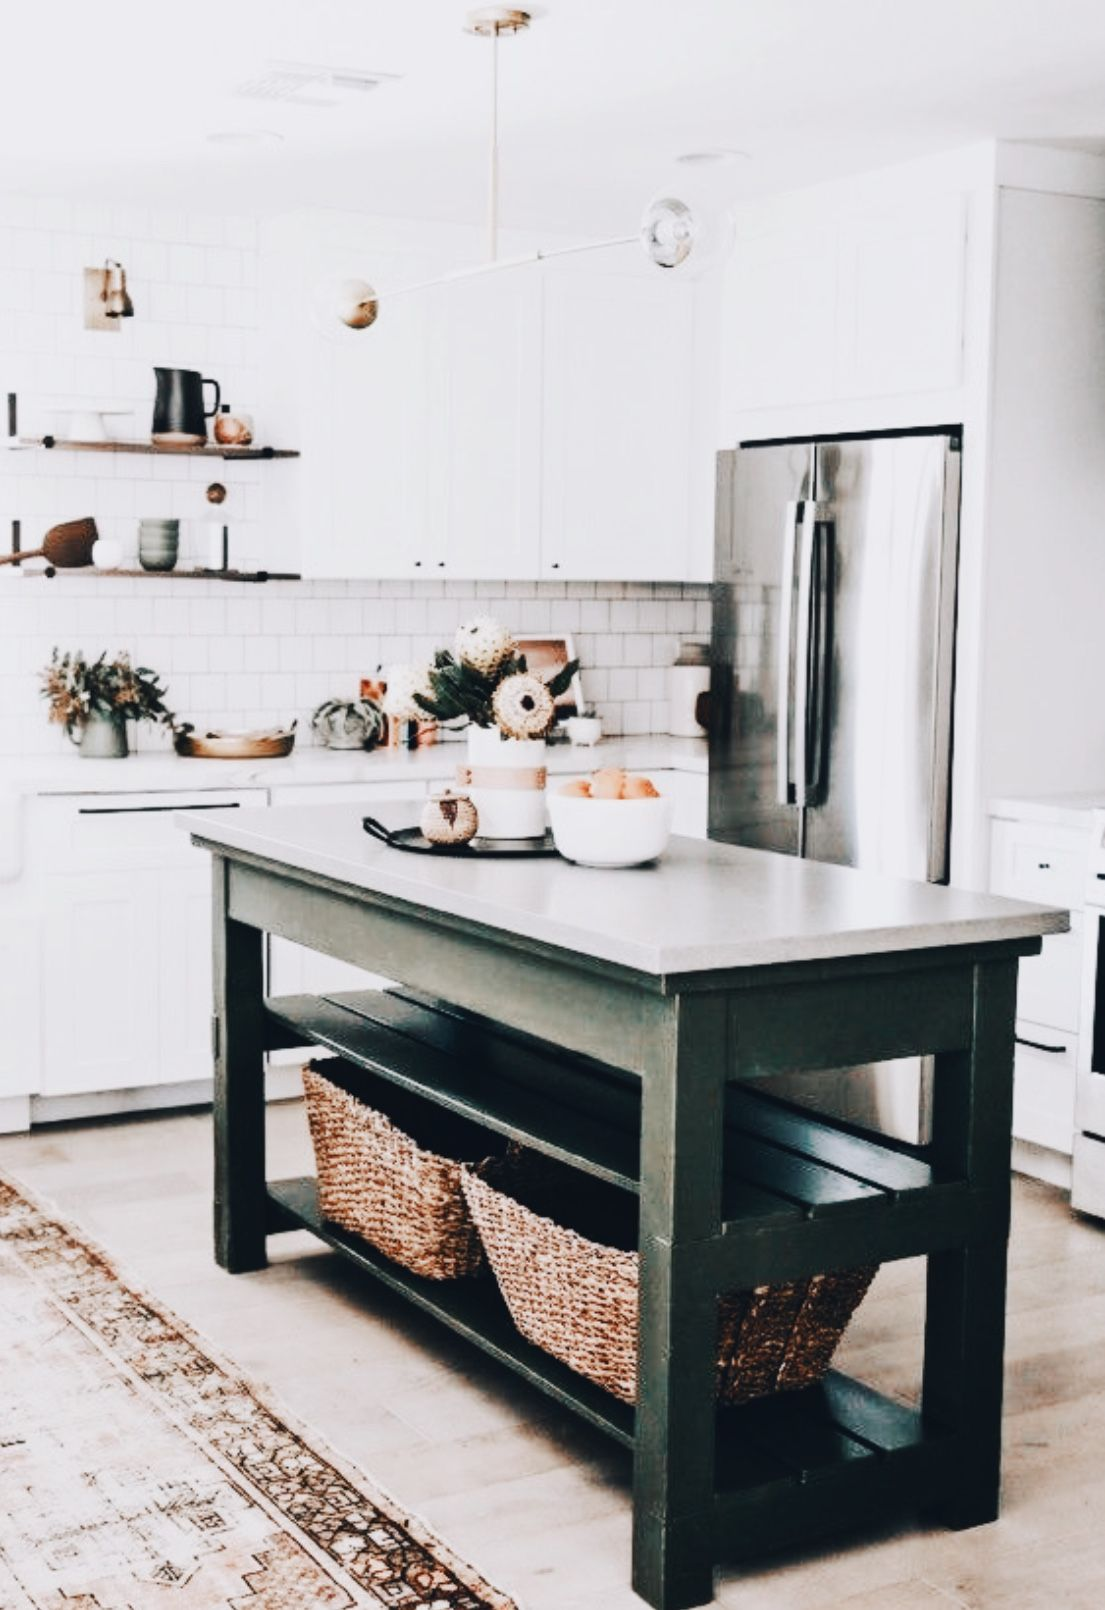 Pin by emma waddell on architecture pinterest kitchens future